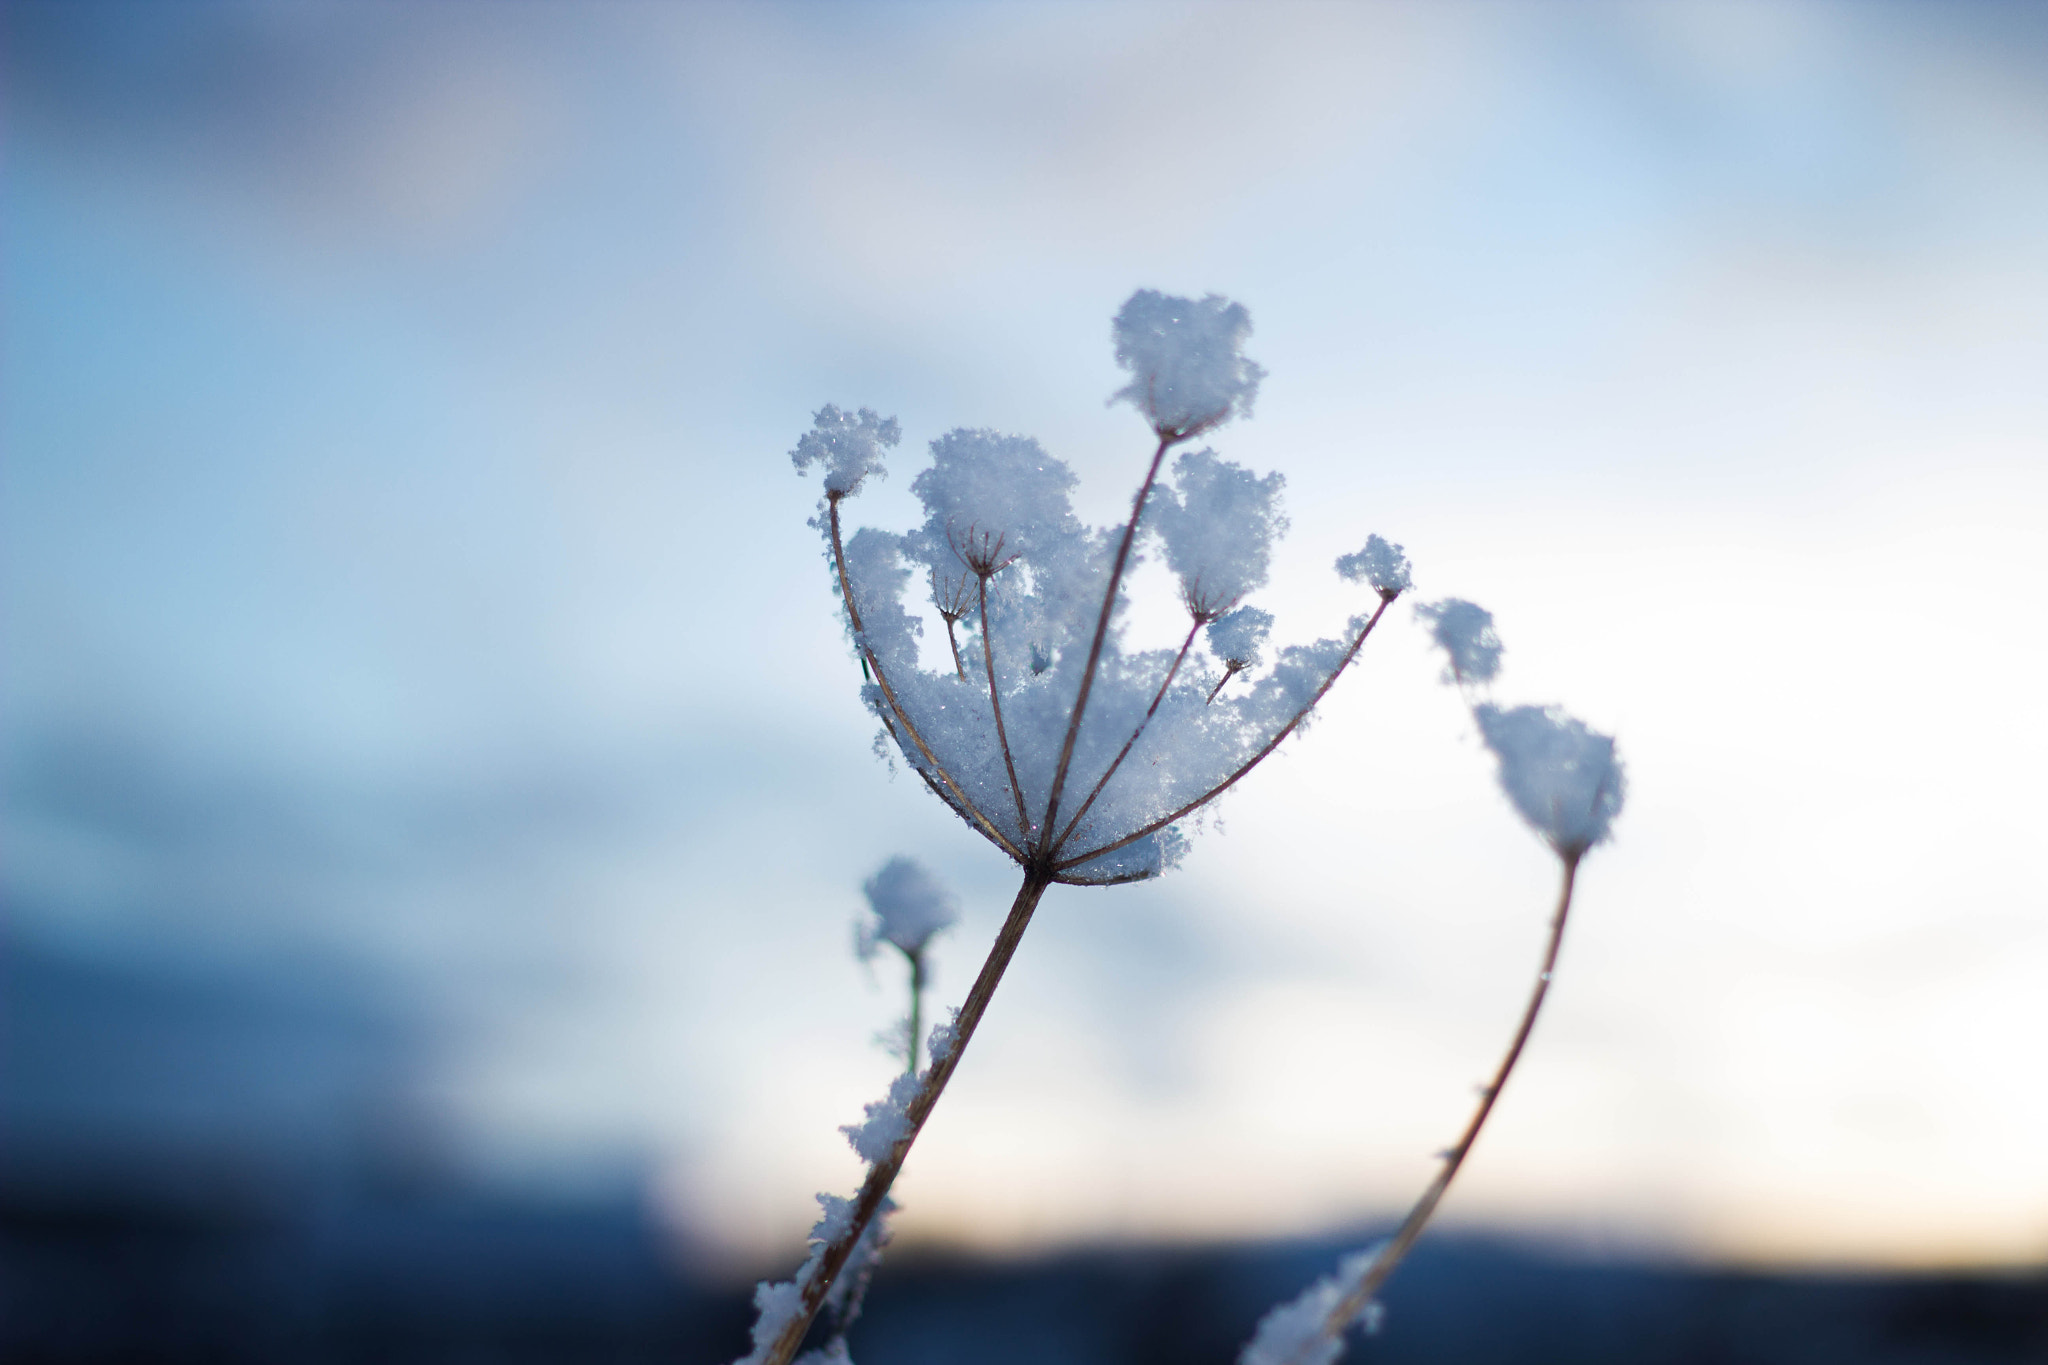 Photograph Plant with snow by Heike Kitzig on 500px